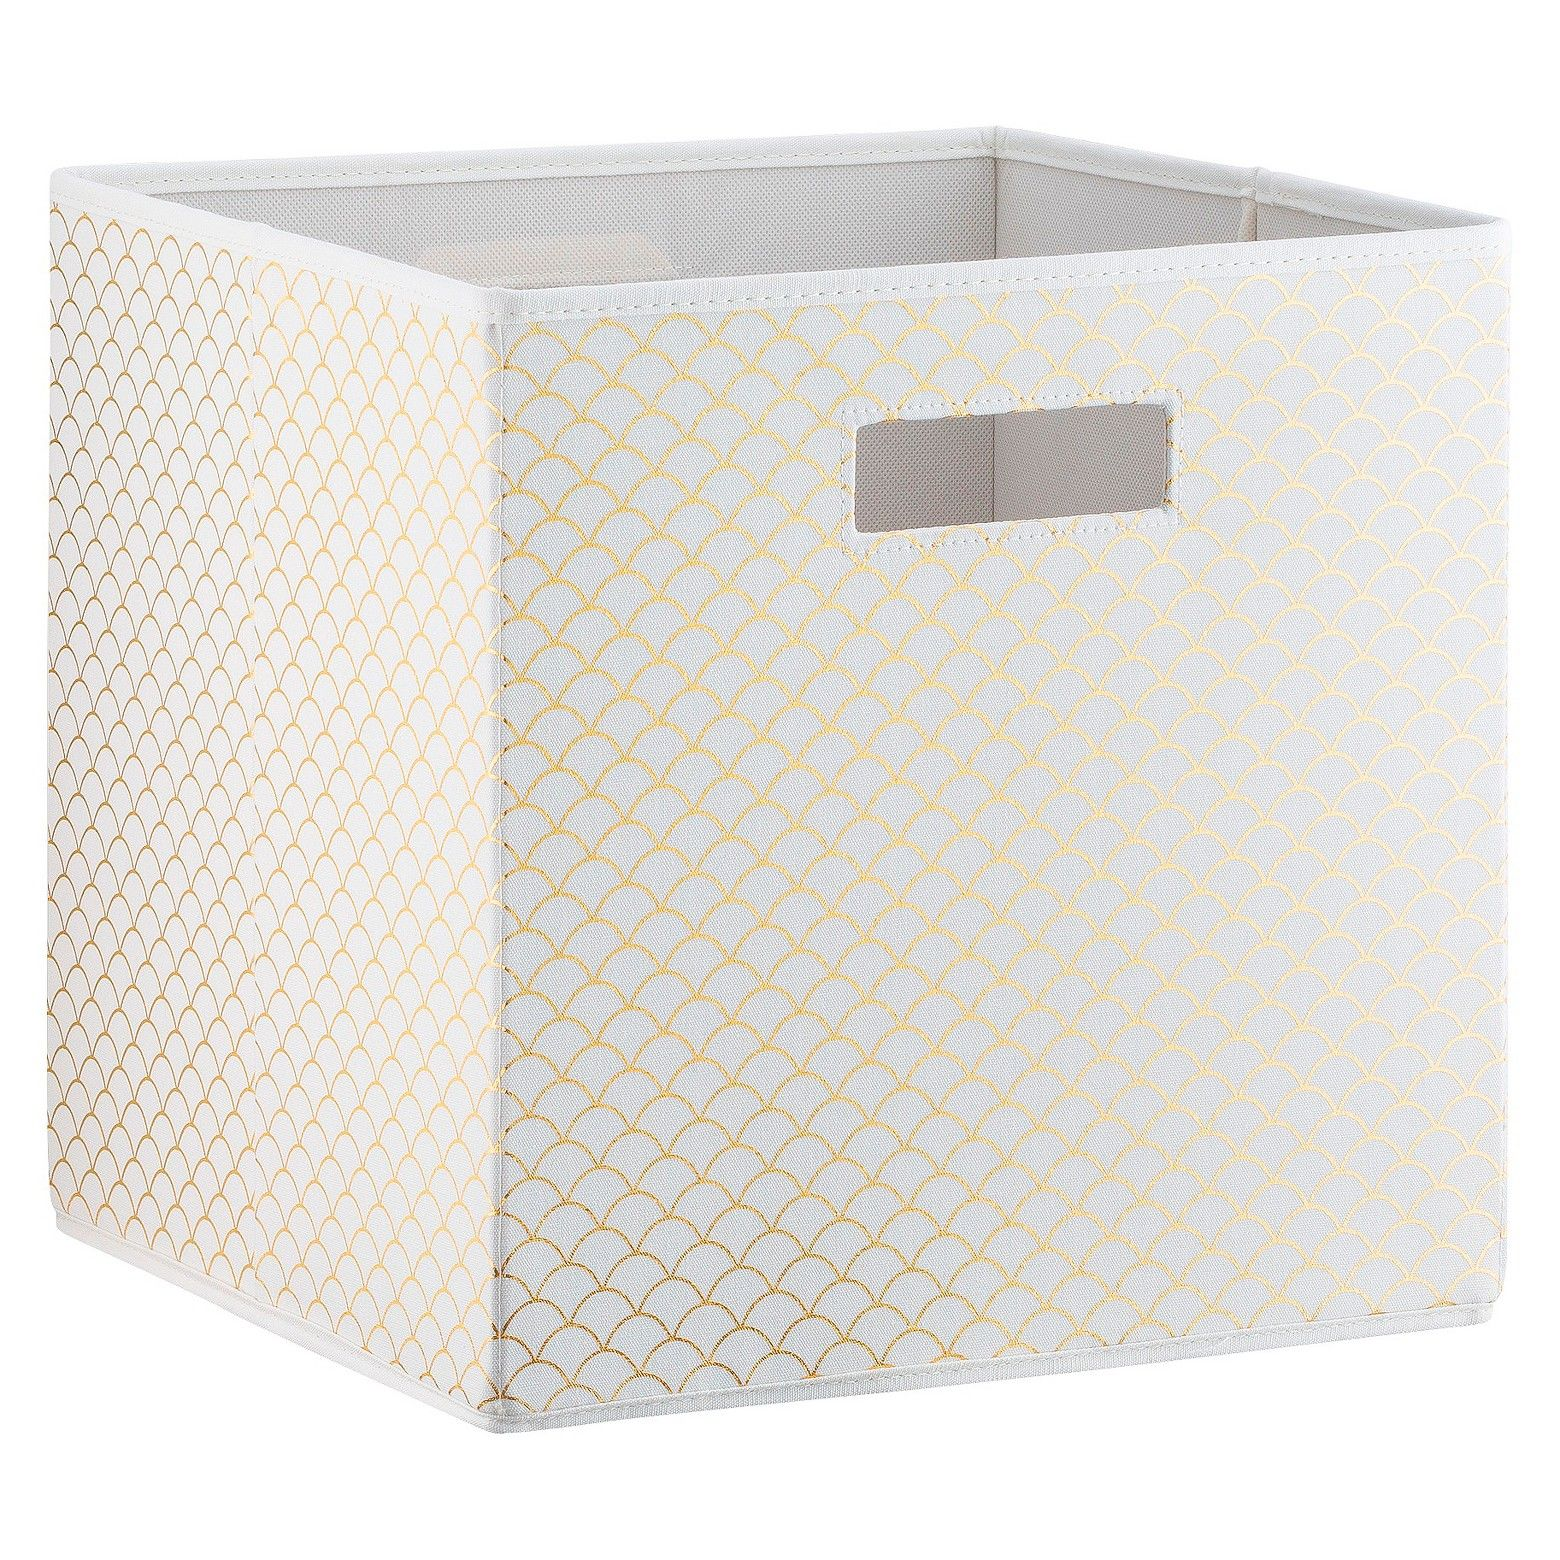 Scallop Kd Storage Toy Bin White Gold Pillowfort Fabric Storage Bins Toy Storage Bins Cube Storage Bins